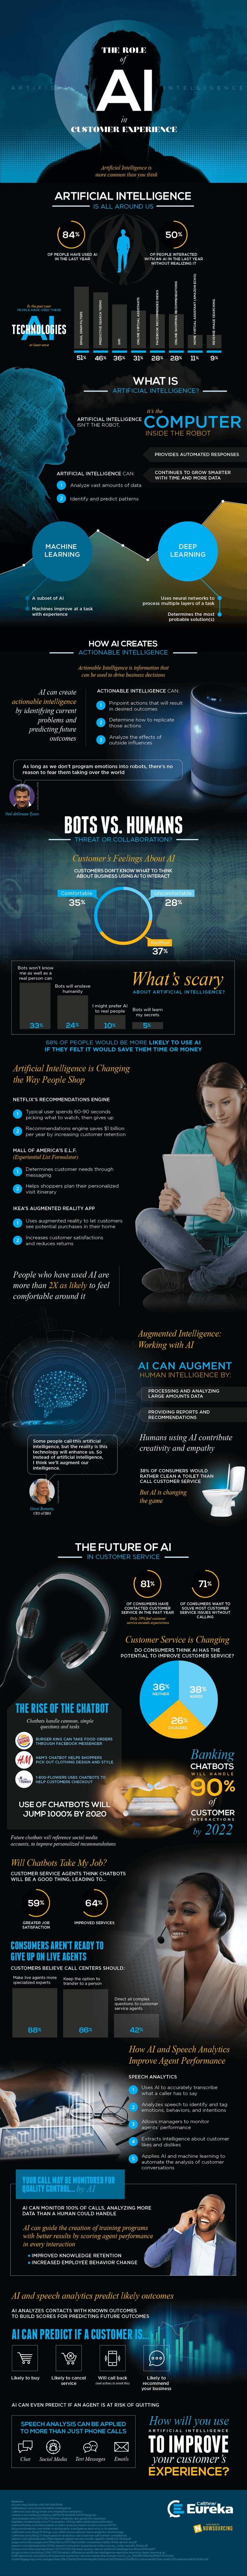 How Artificial Intelligence is Improving Customer Experience [Infographic] | Social Media Today